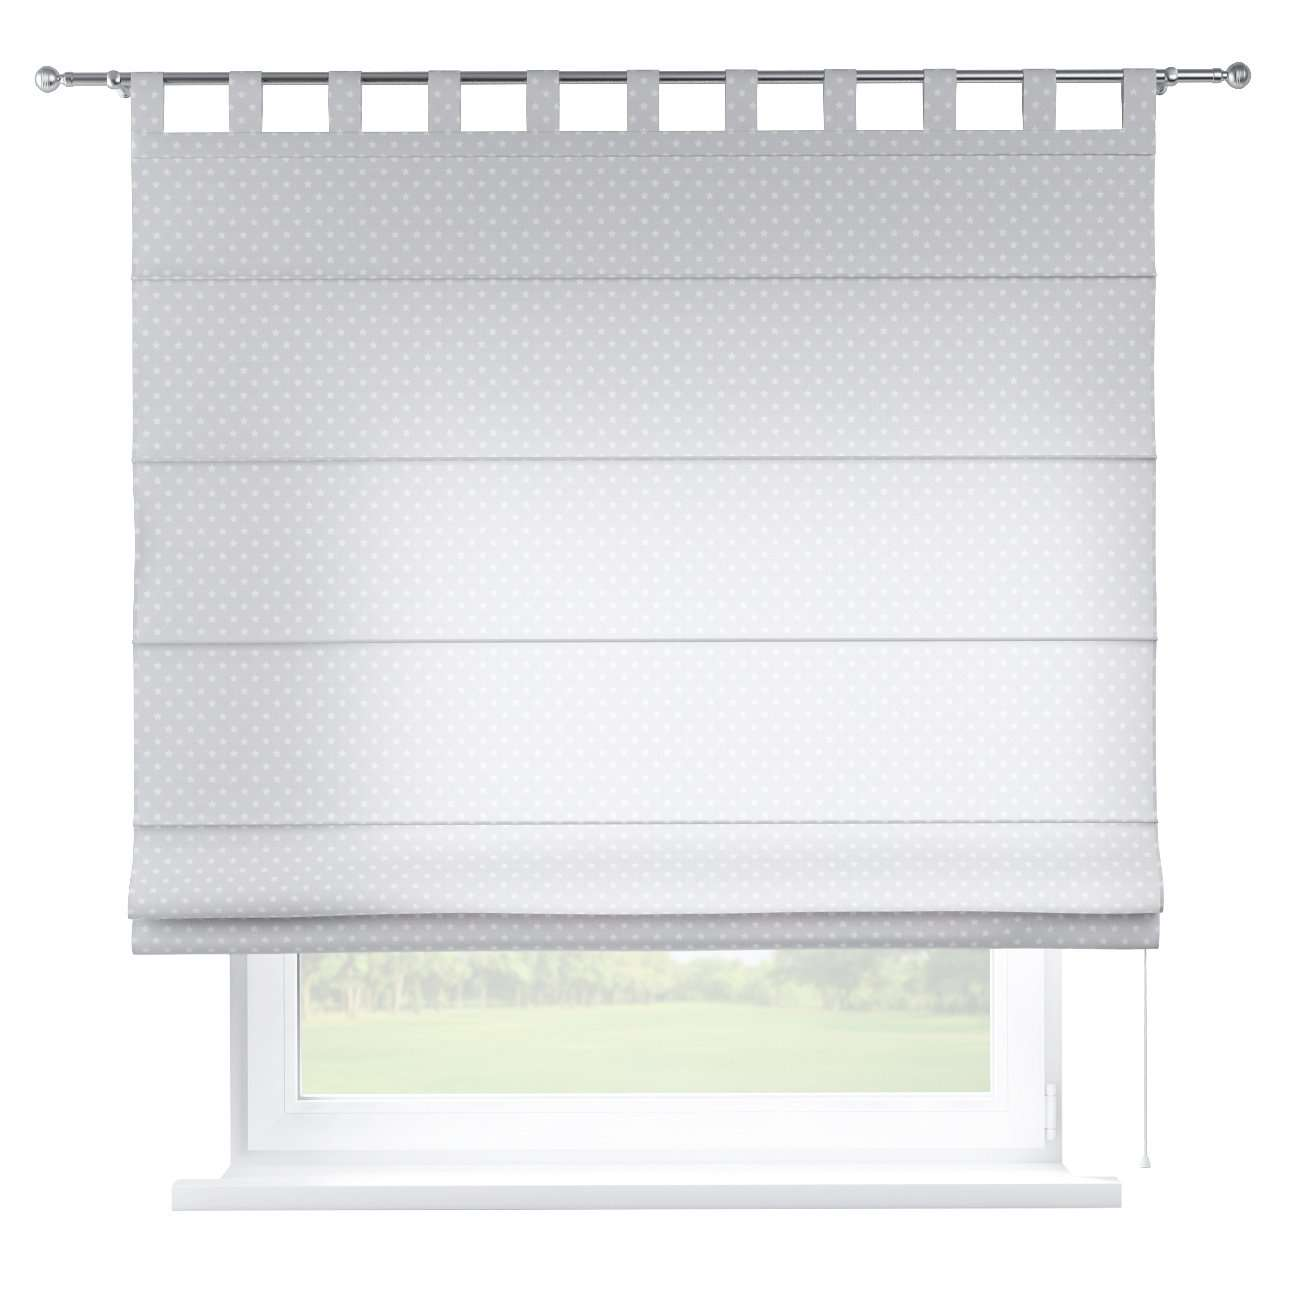 Verona tab top roman blind 80 x 170 cm (31.5 x 67 inch) in collection Ashley, fabric: 137-67